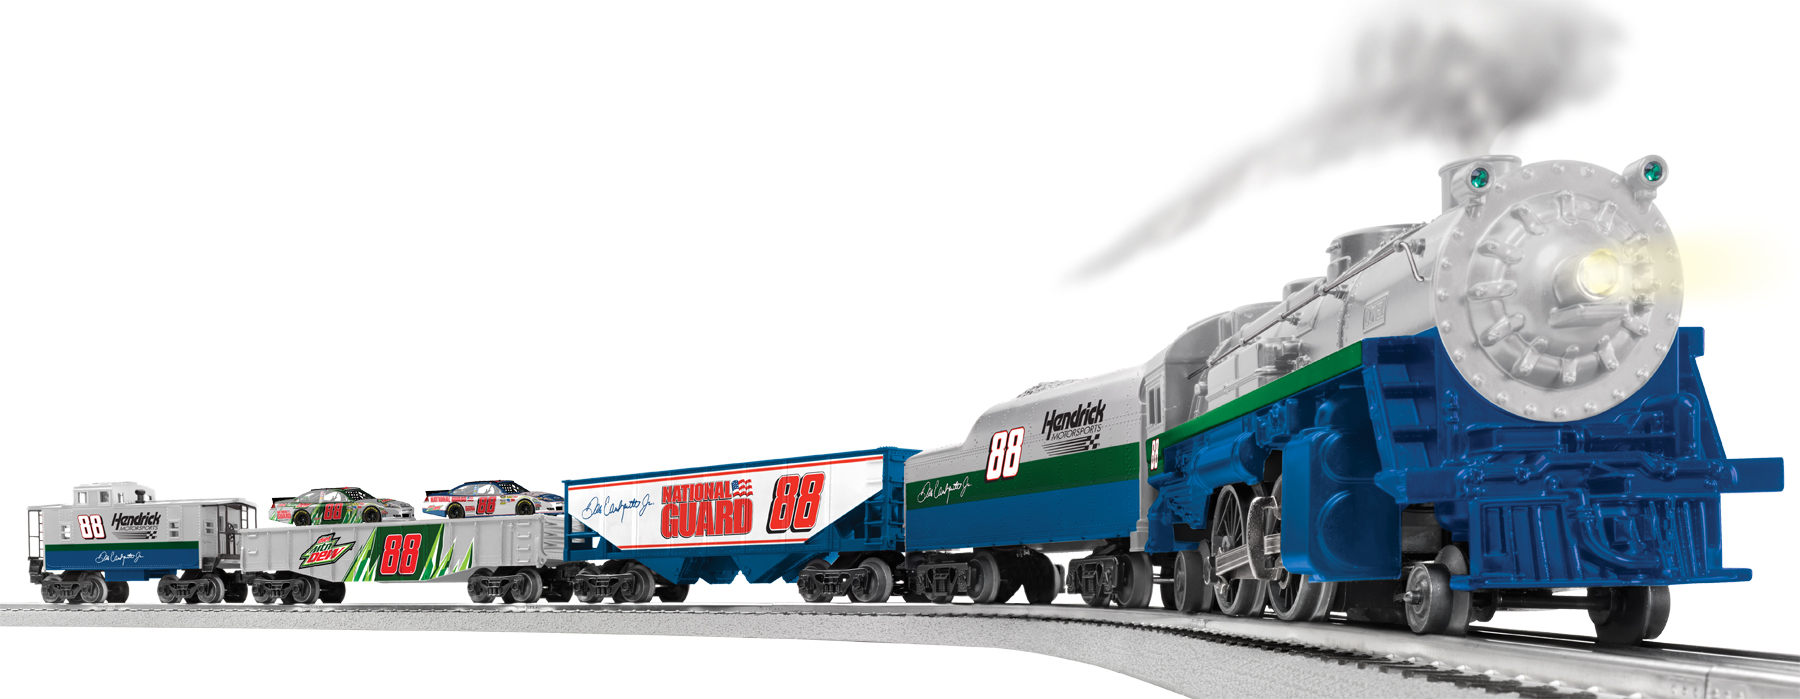 lionel trains dale earnhardt jr ready to run electric train set